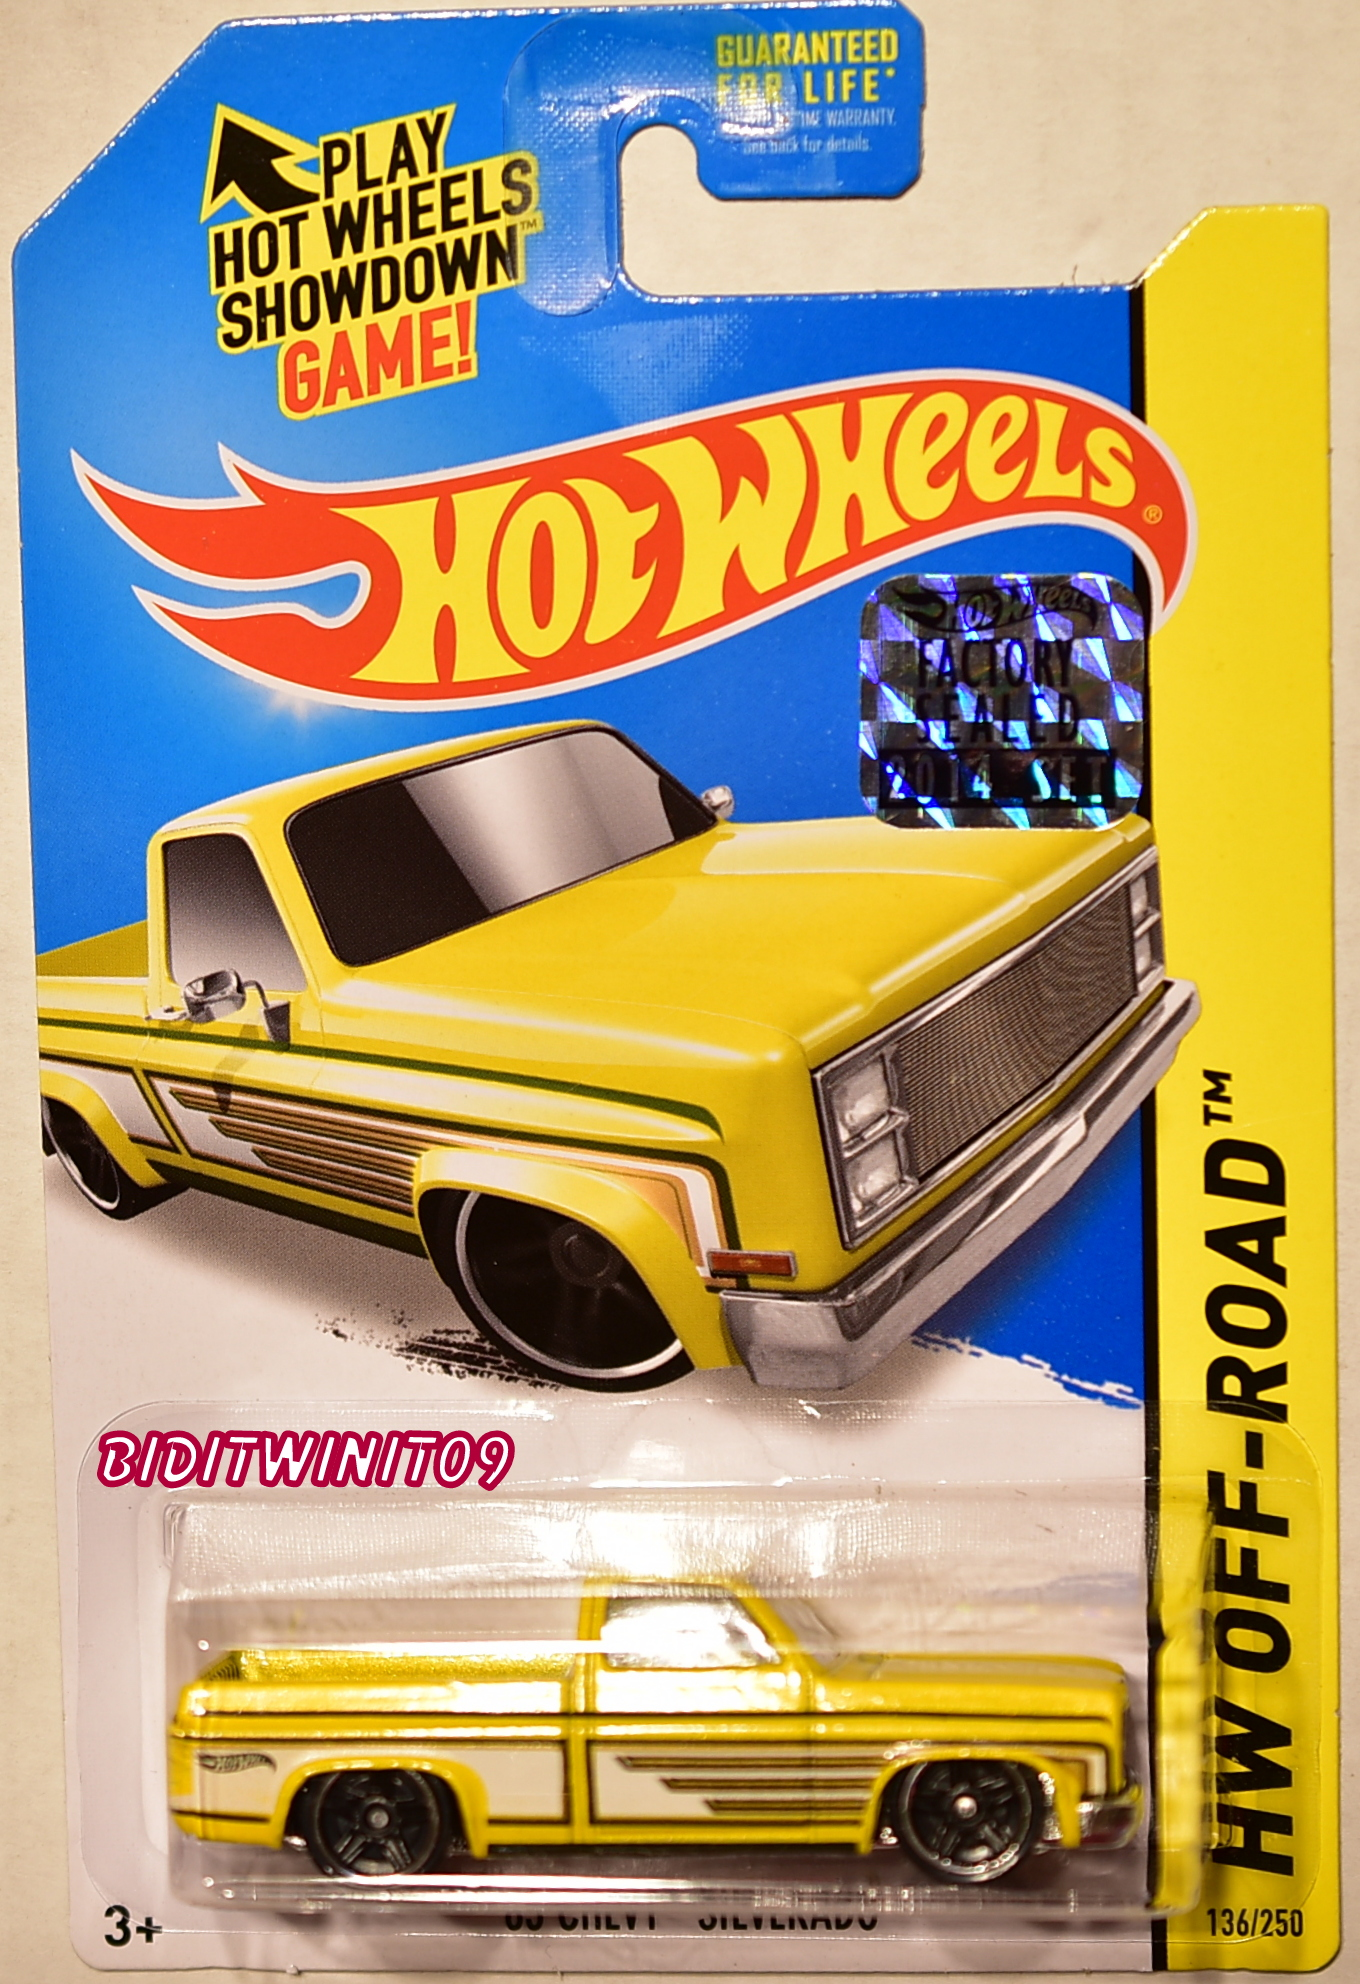 HOT WHEELS 2014 HW OFF-ROAD '83 CHEVY SILVERADO YELLOW FACTORY SEALED